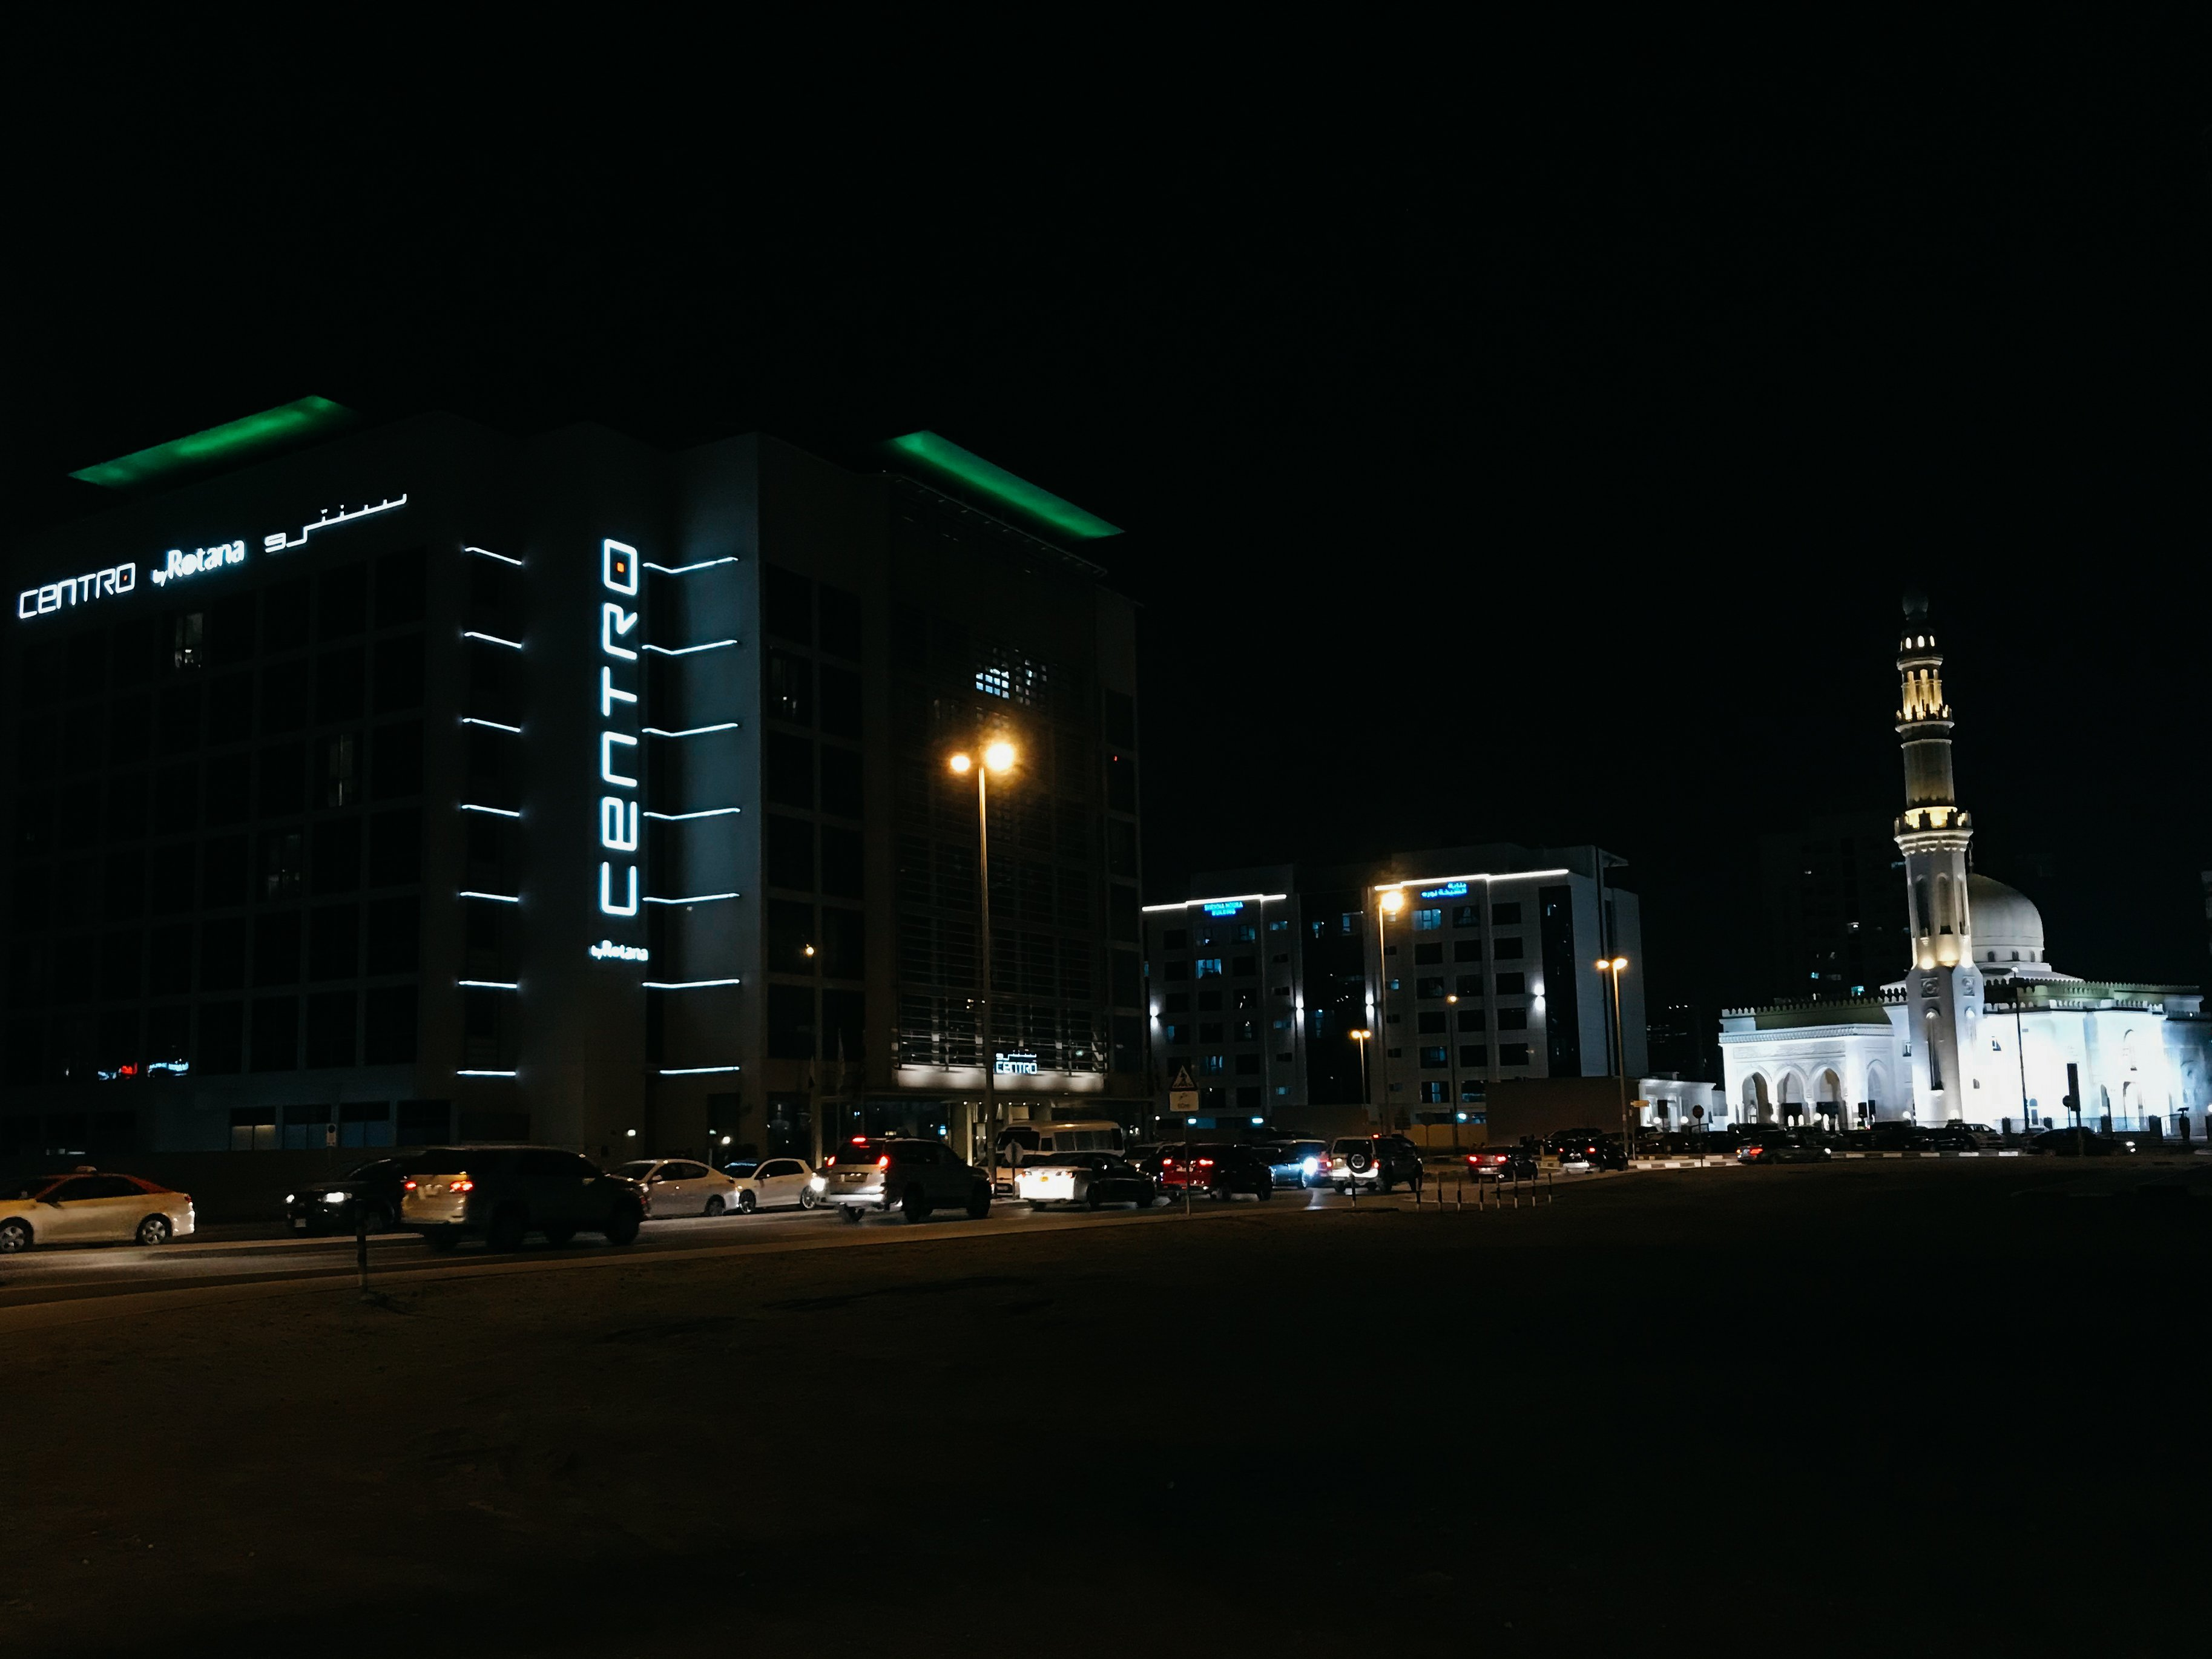 Corporate with a bit of luxury is the perfect way to describe Rotana's Centro Barsha. This modern and affordable business hotel was just what we needed. Read more at www.thefivefoottraveler.com